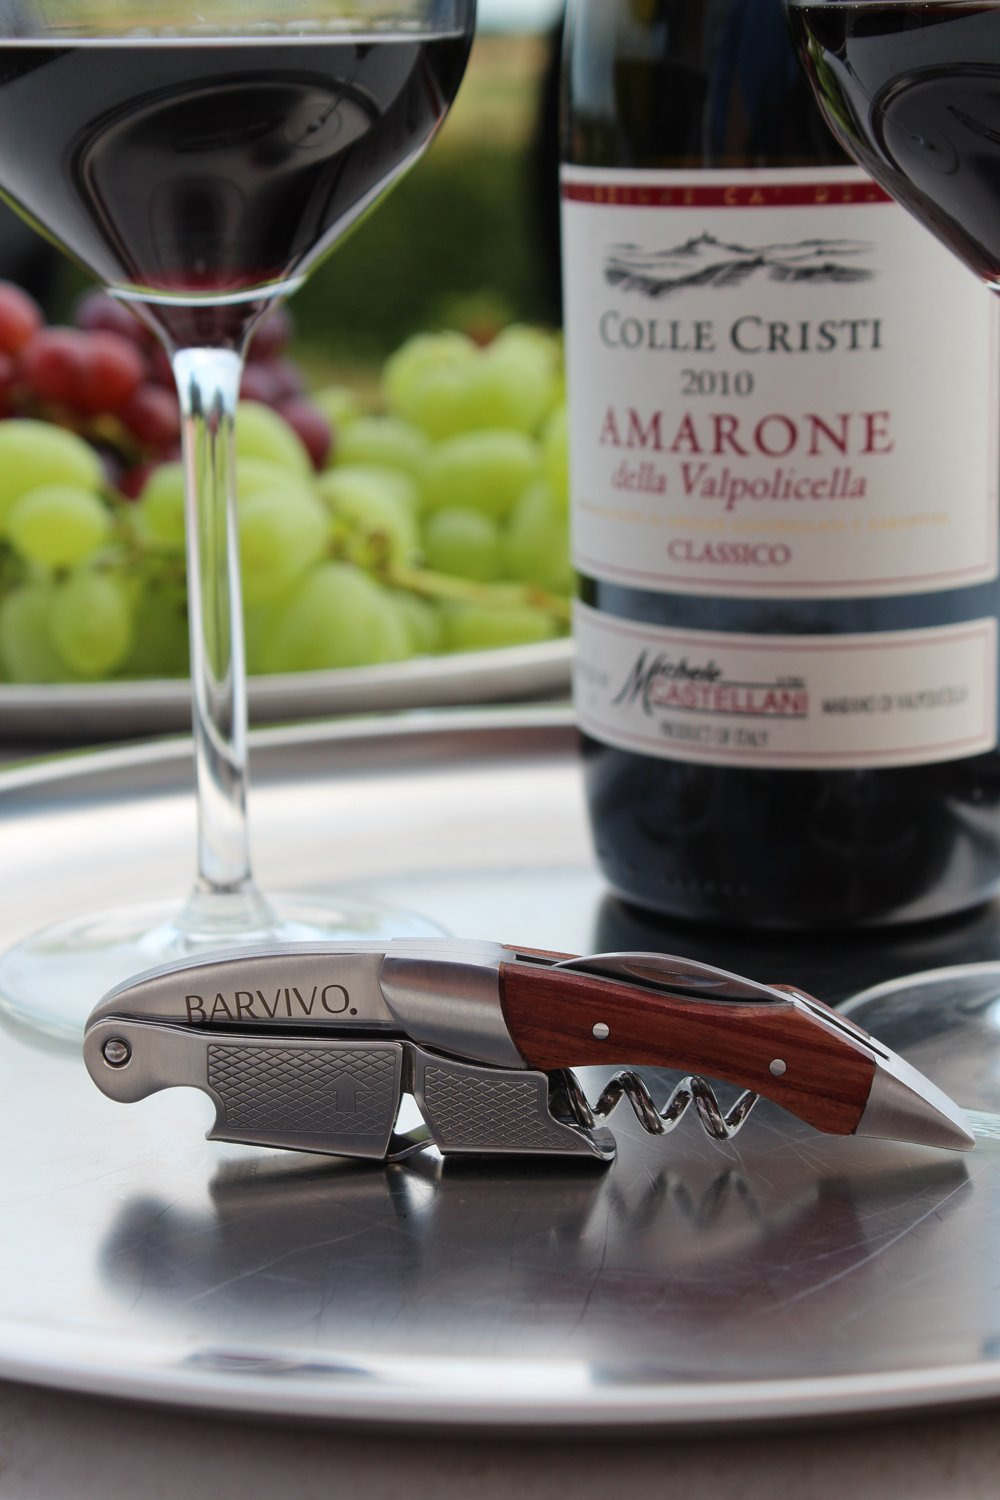 Professional Waiters Corkscrew by Barvivo - This Wine Opener is Used to Open Beer and Wine Bottles by Waiters, Sommelier and Bartenders Around the World. Made of Stainless Steel and Natural Rosewood. by Barvivo (Image #2)